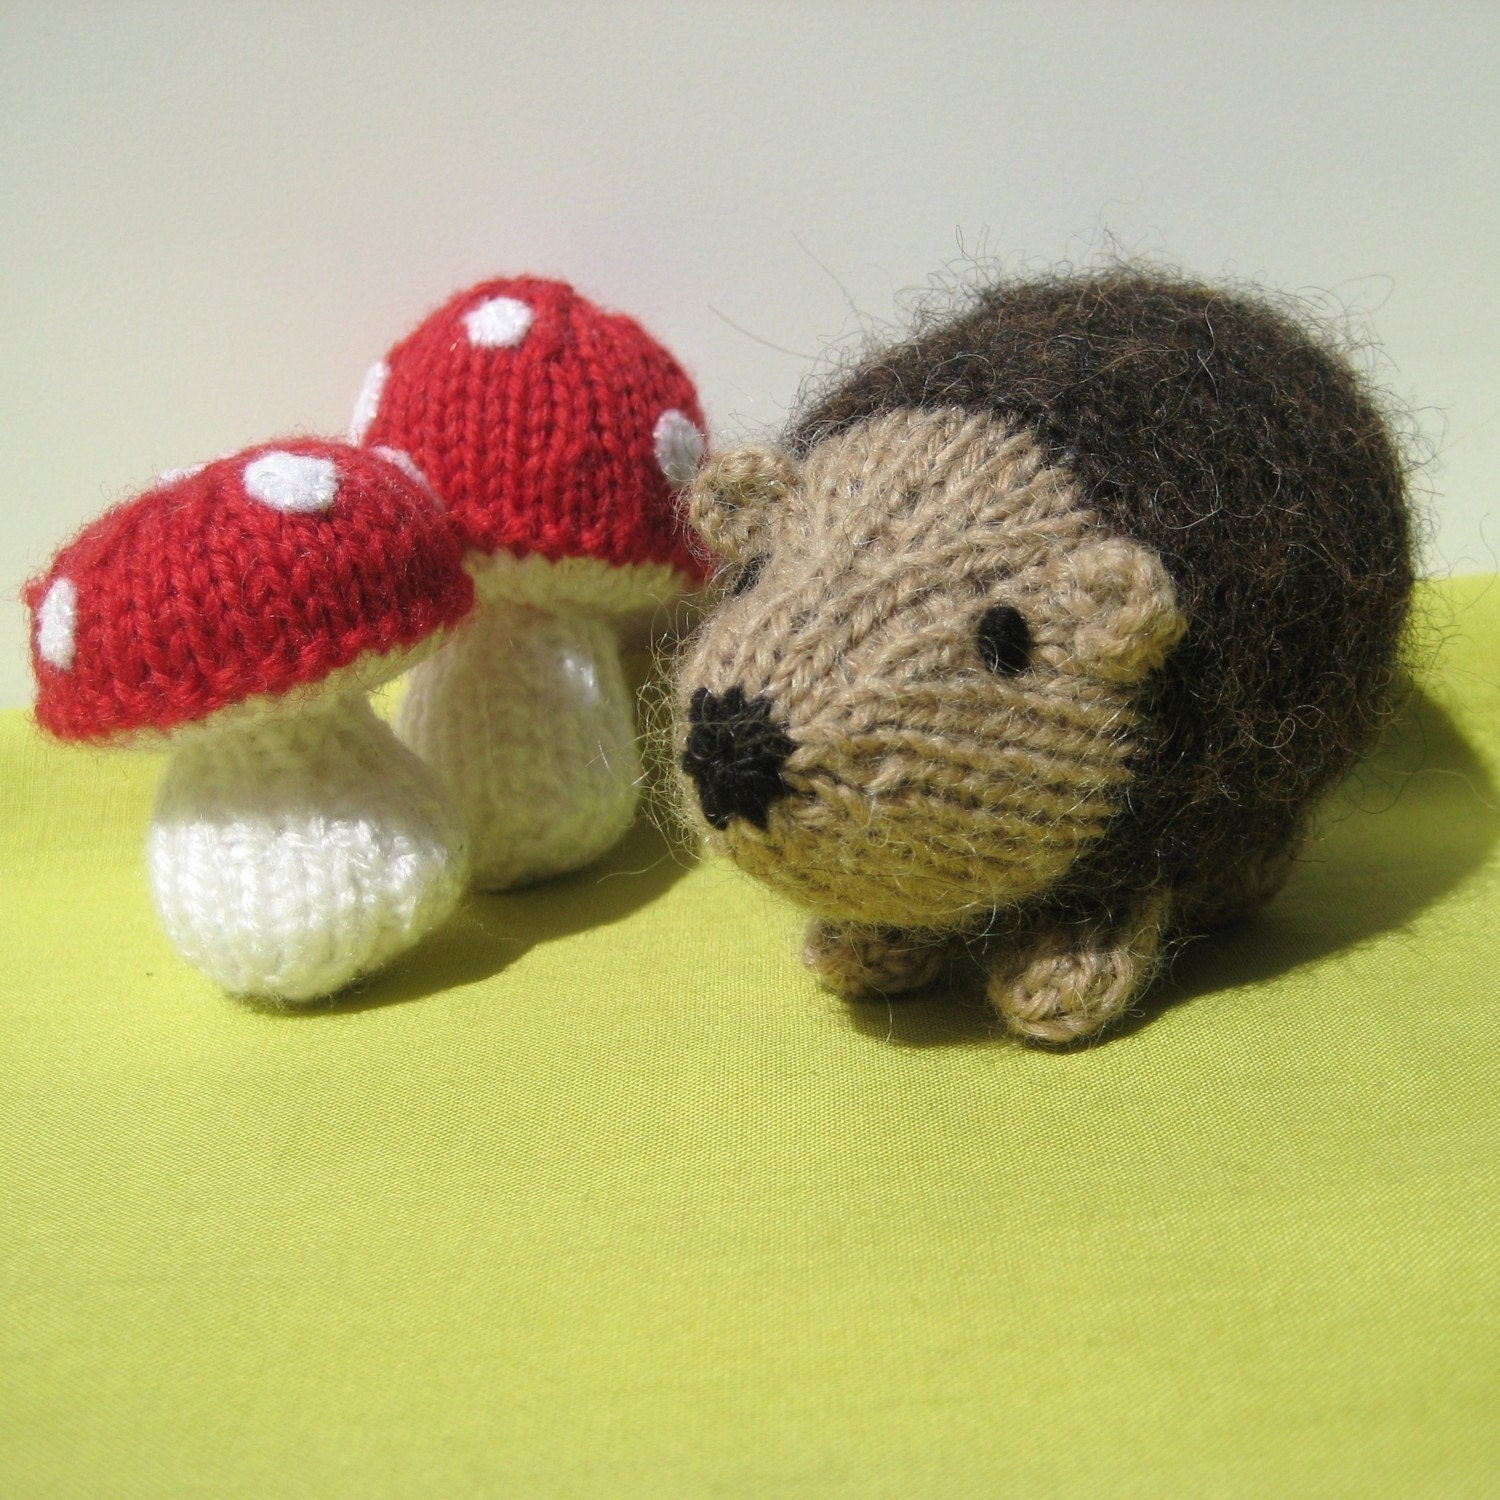 Knitting Pattern For Hedgehog : Kensington Hedgehog and toadstools toy knitting by ...